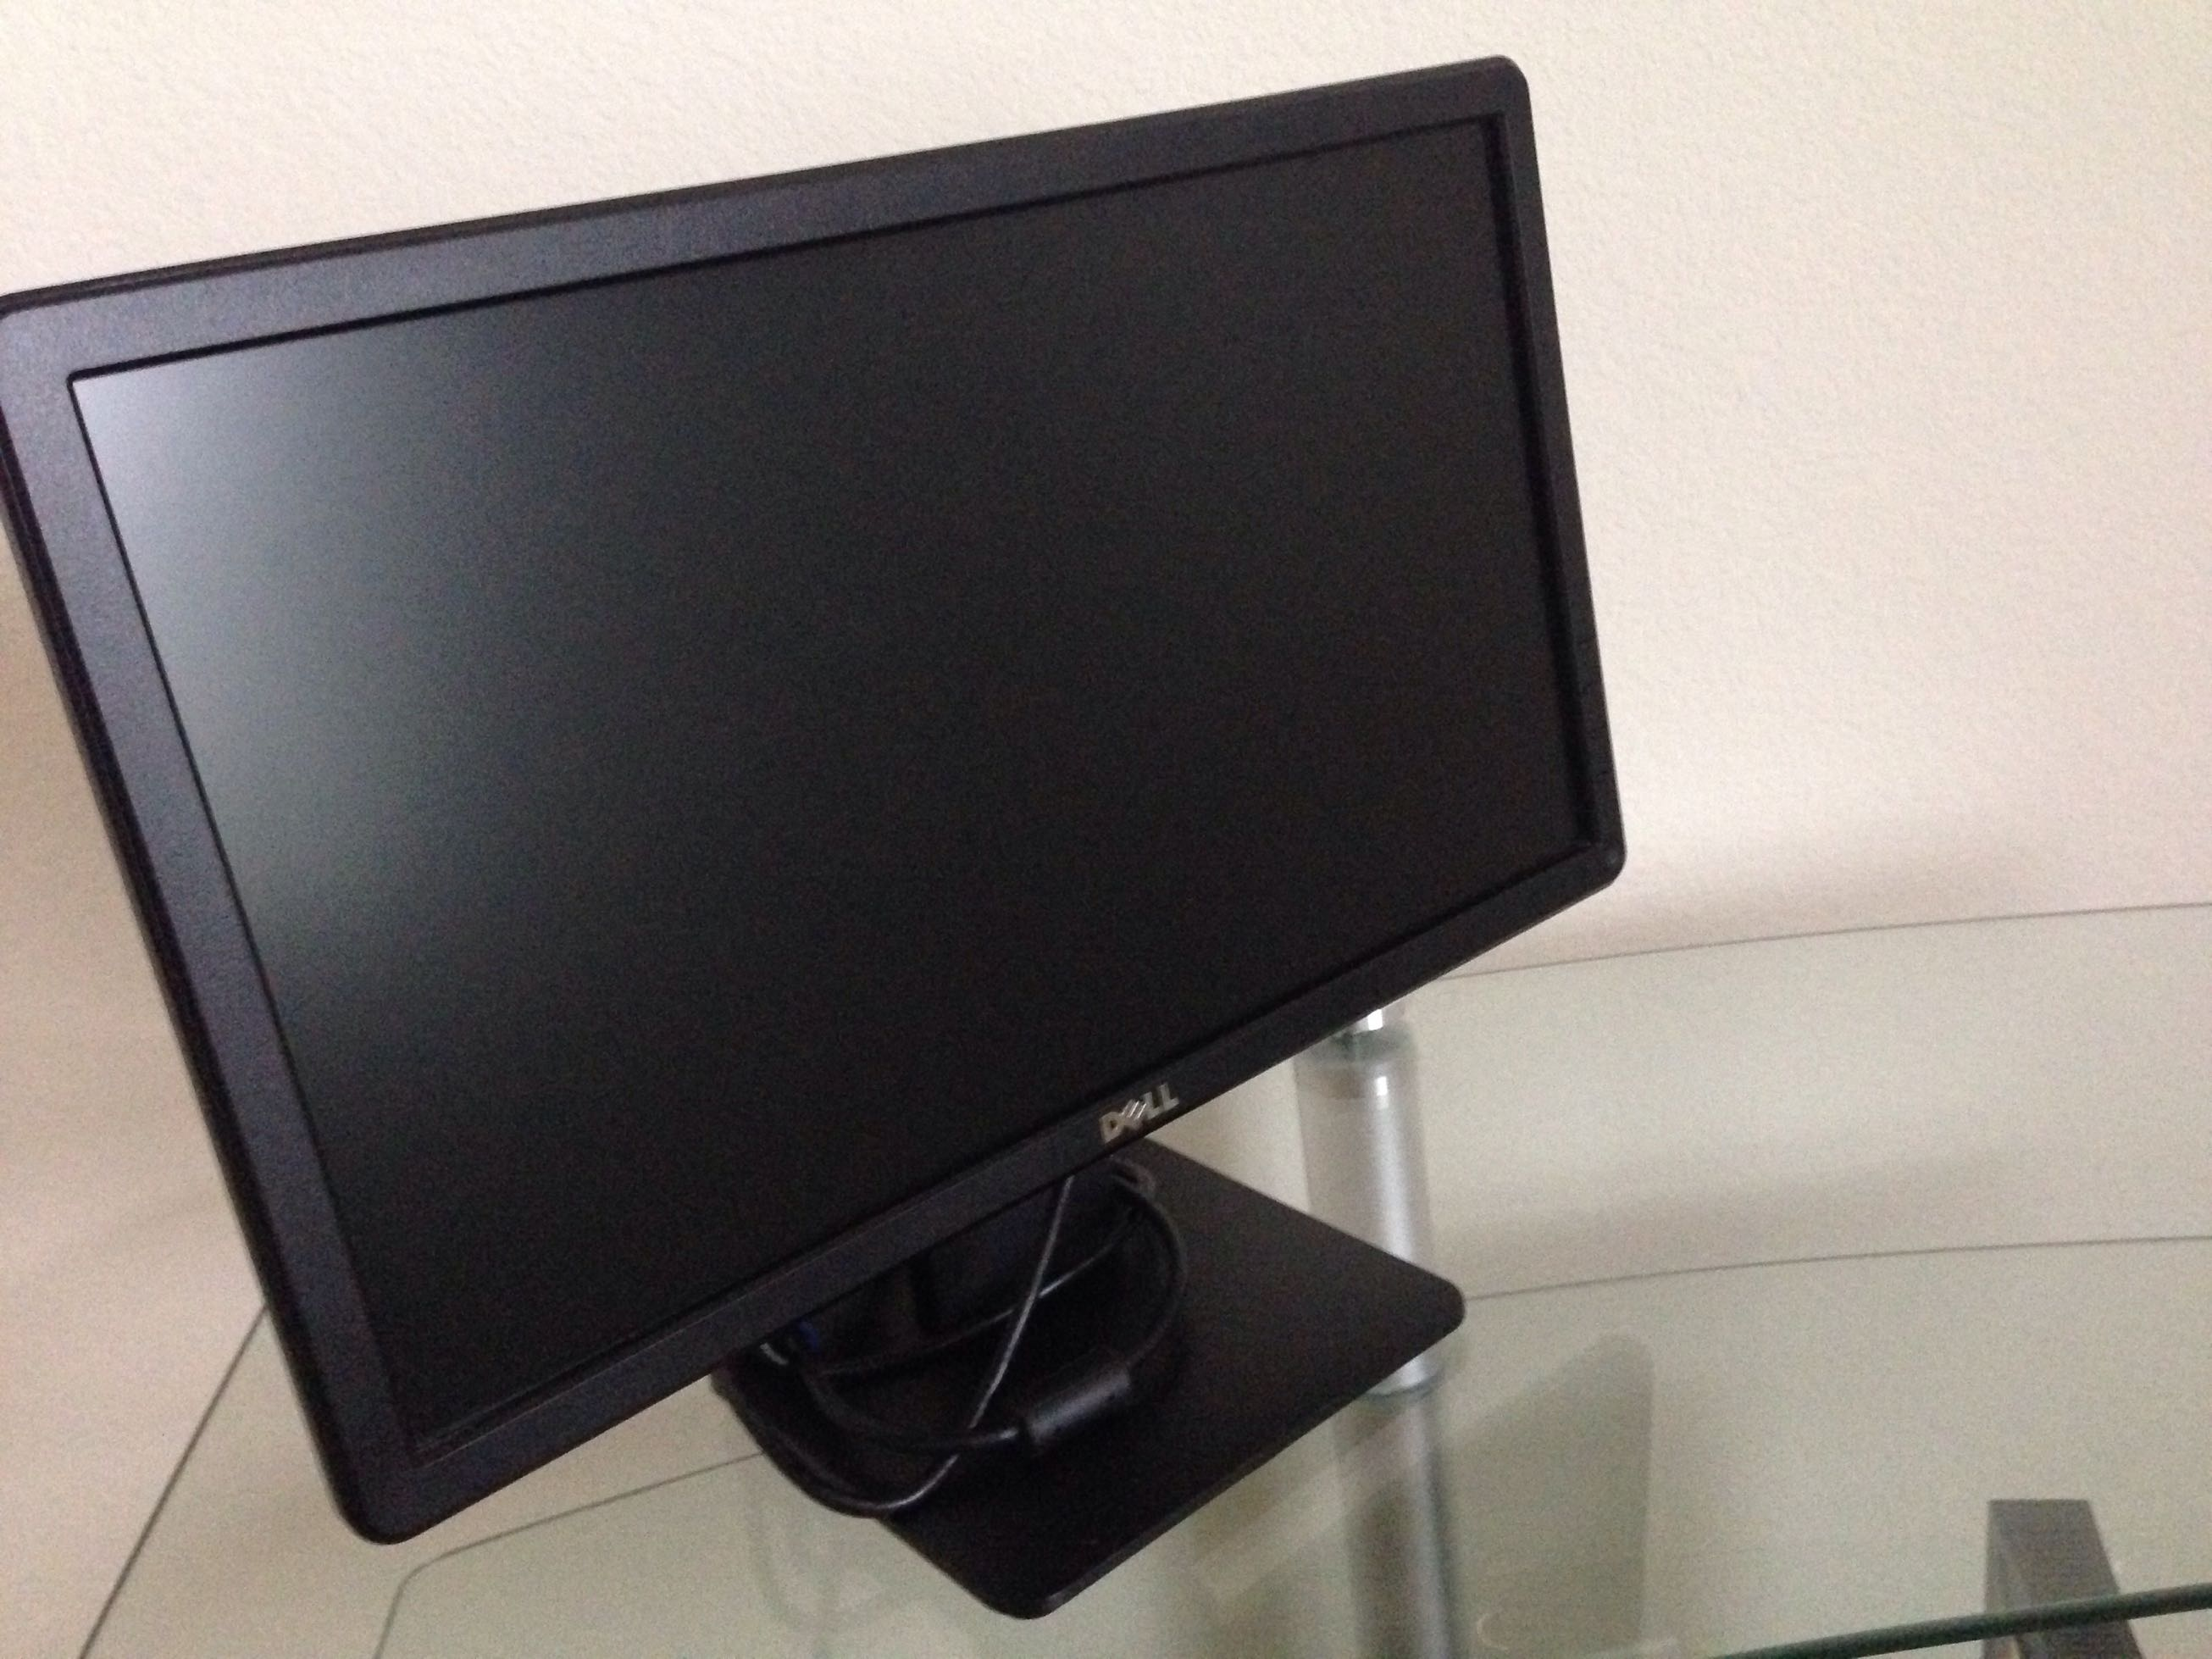 Dell Inspiron 660s windows 8 along with dell monitor model number e1914hf  18 5